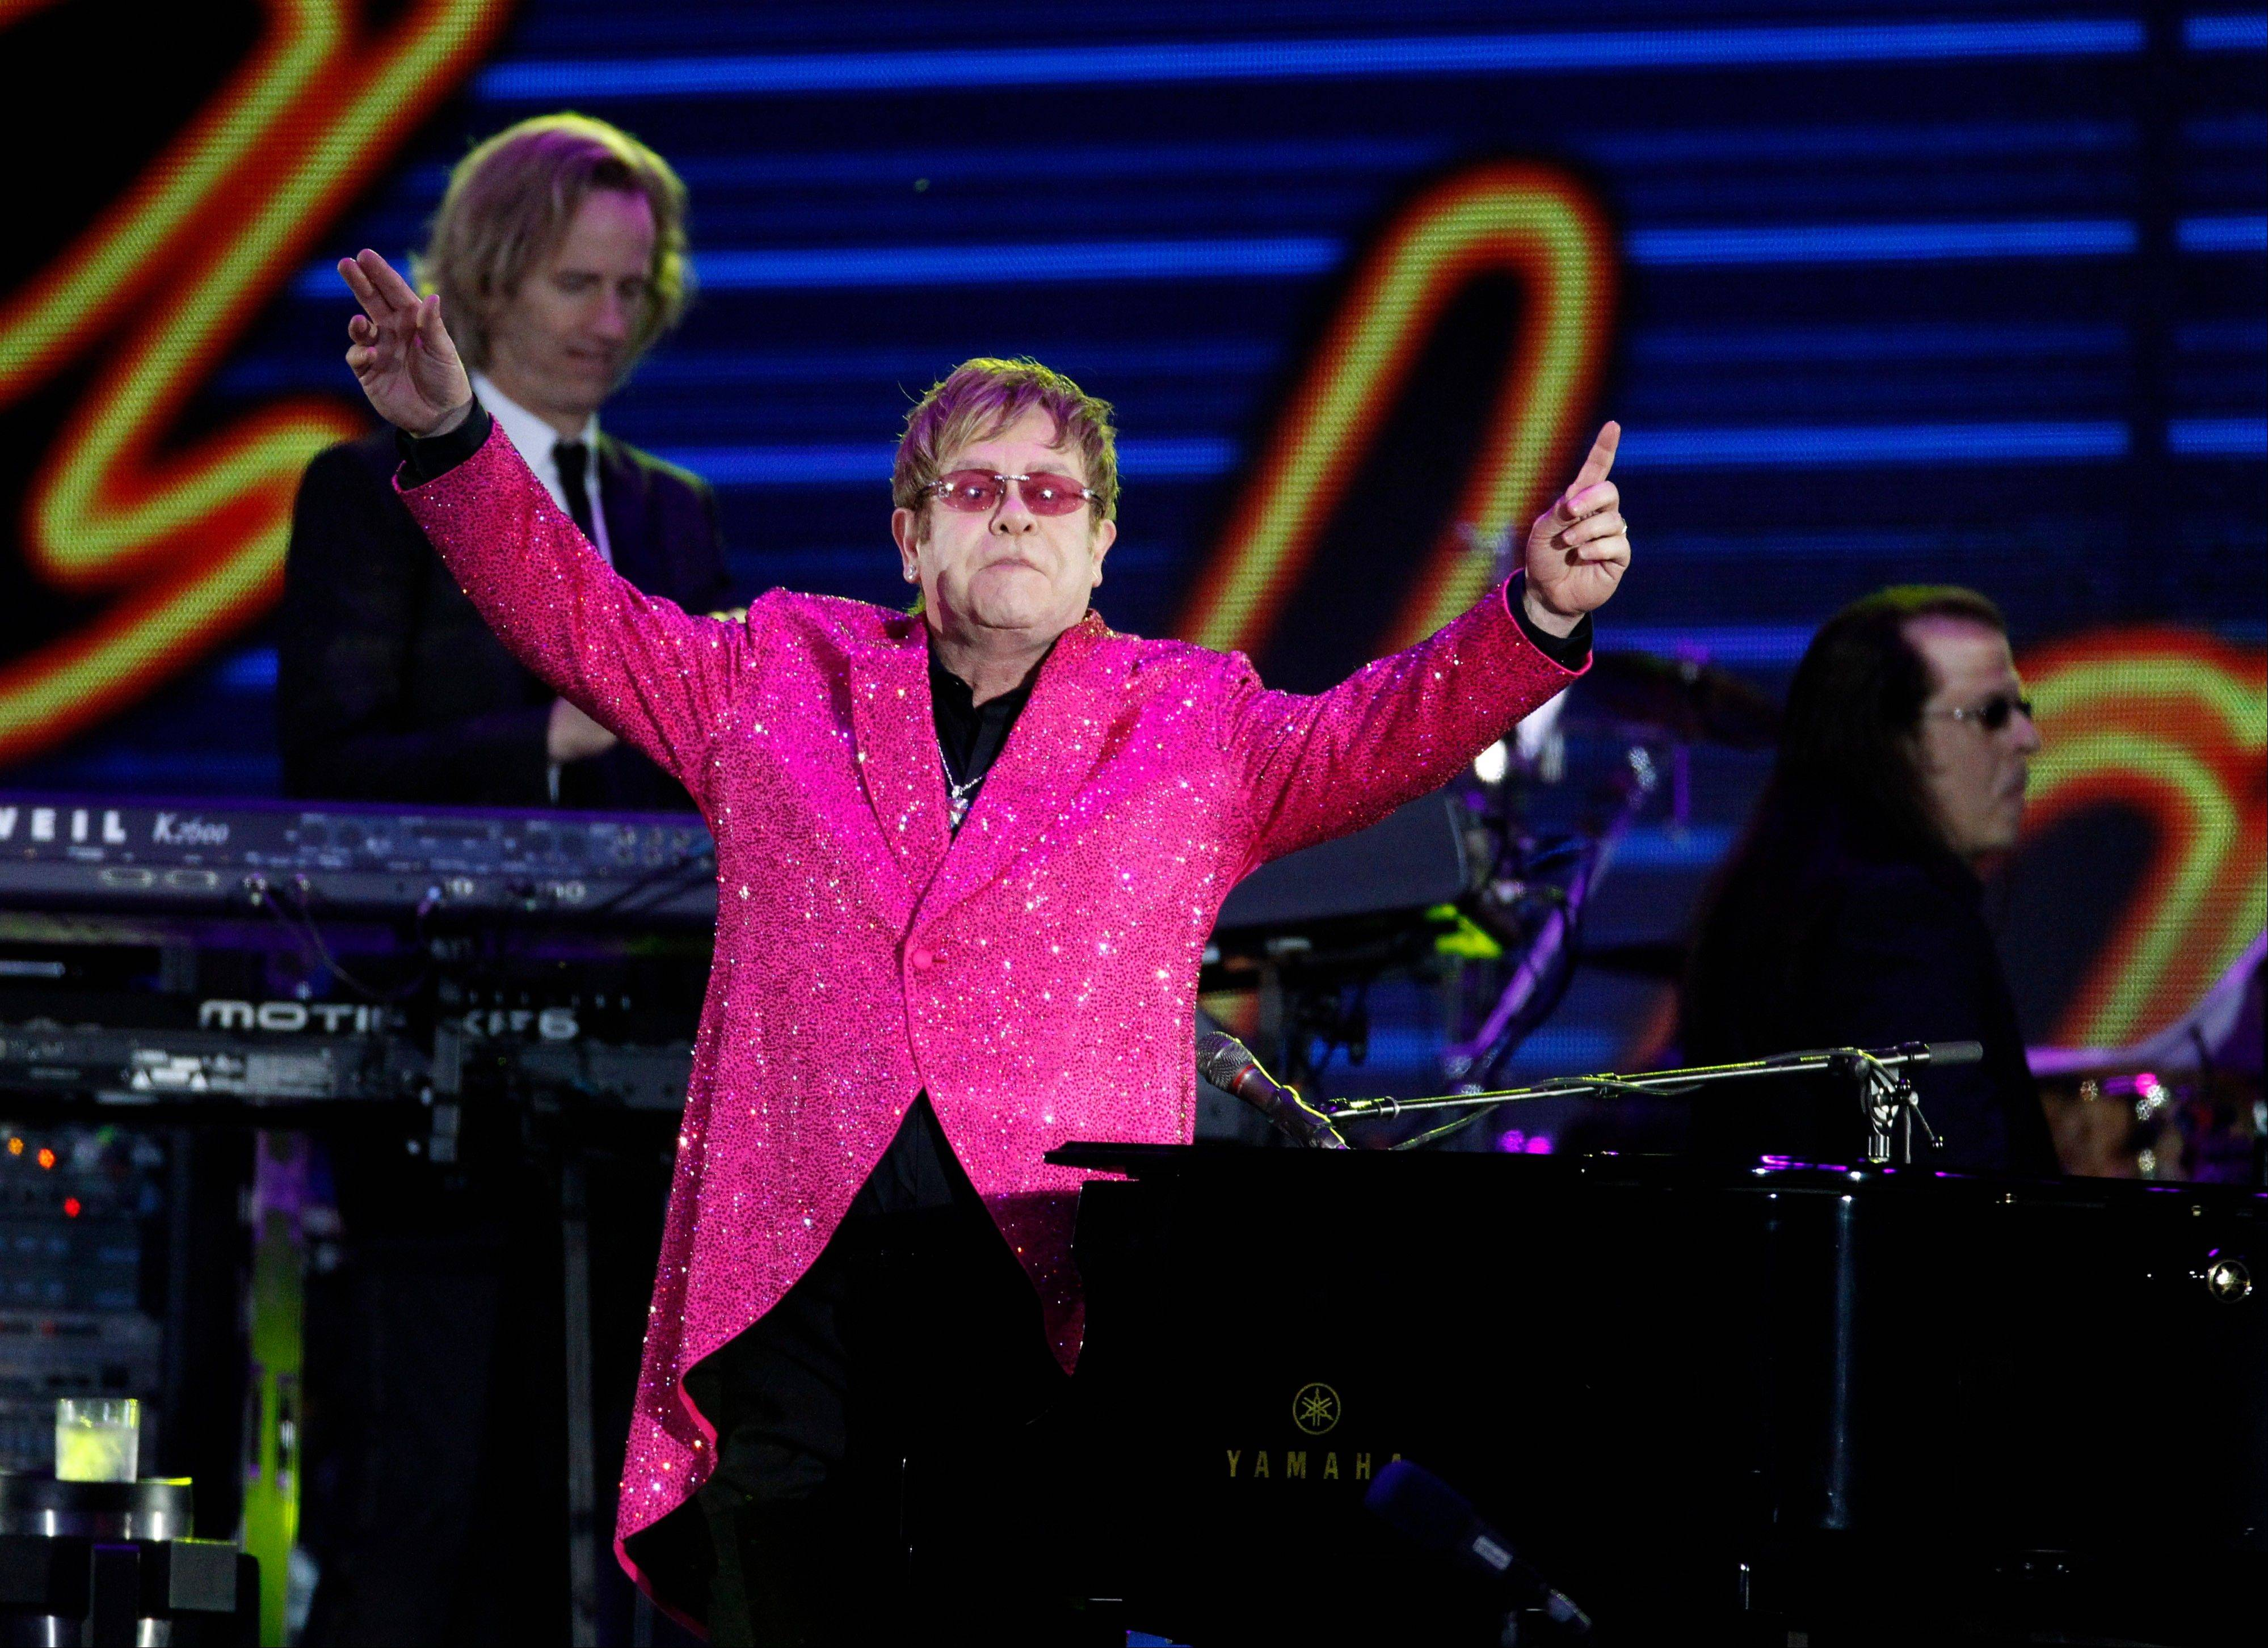 Sir Elton John performs at the Queen's Jubilee Concert in front of Buckingham Palace, London, Monday, June 4, 2012. The concert is a part of four days of celebrations to mark the 60-year reign of Britain's Queen Elizabeth II.